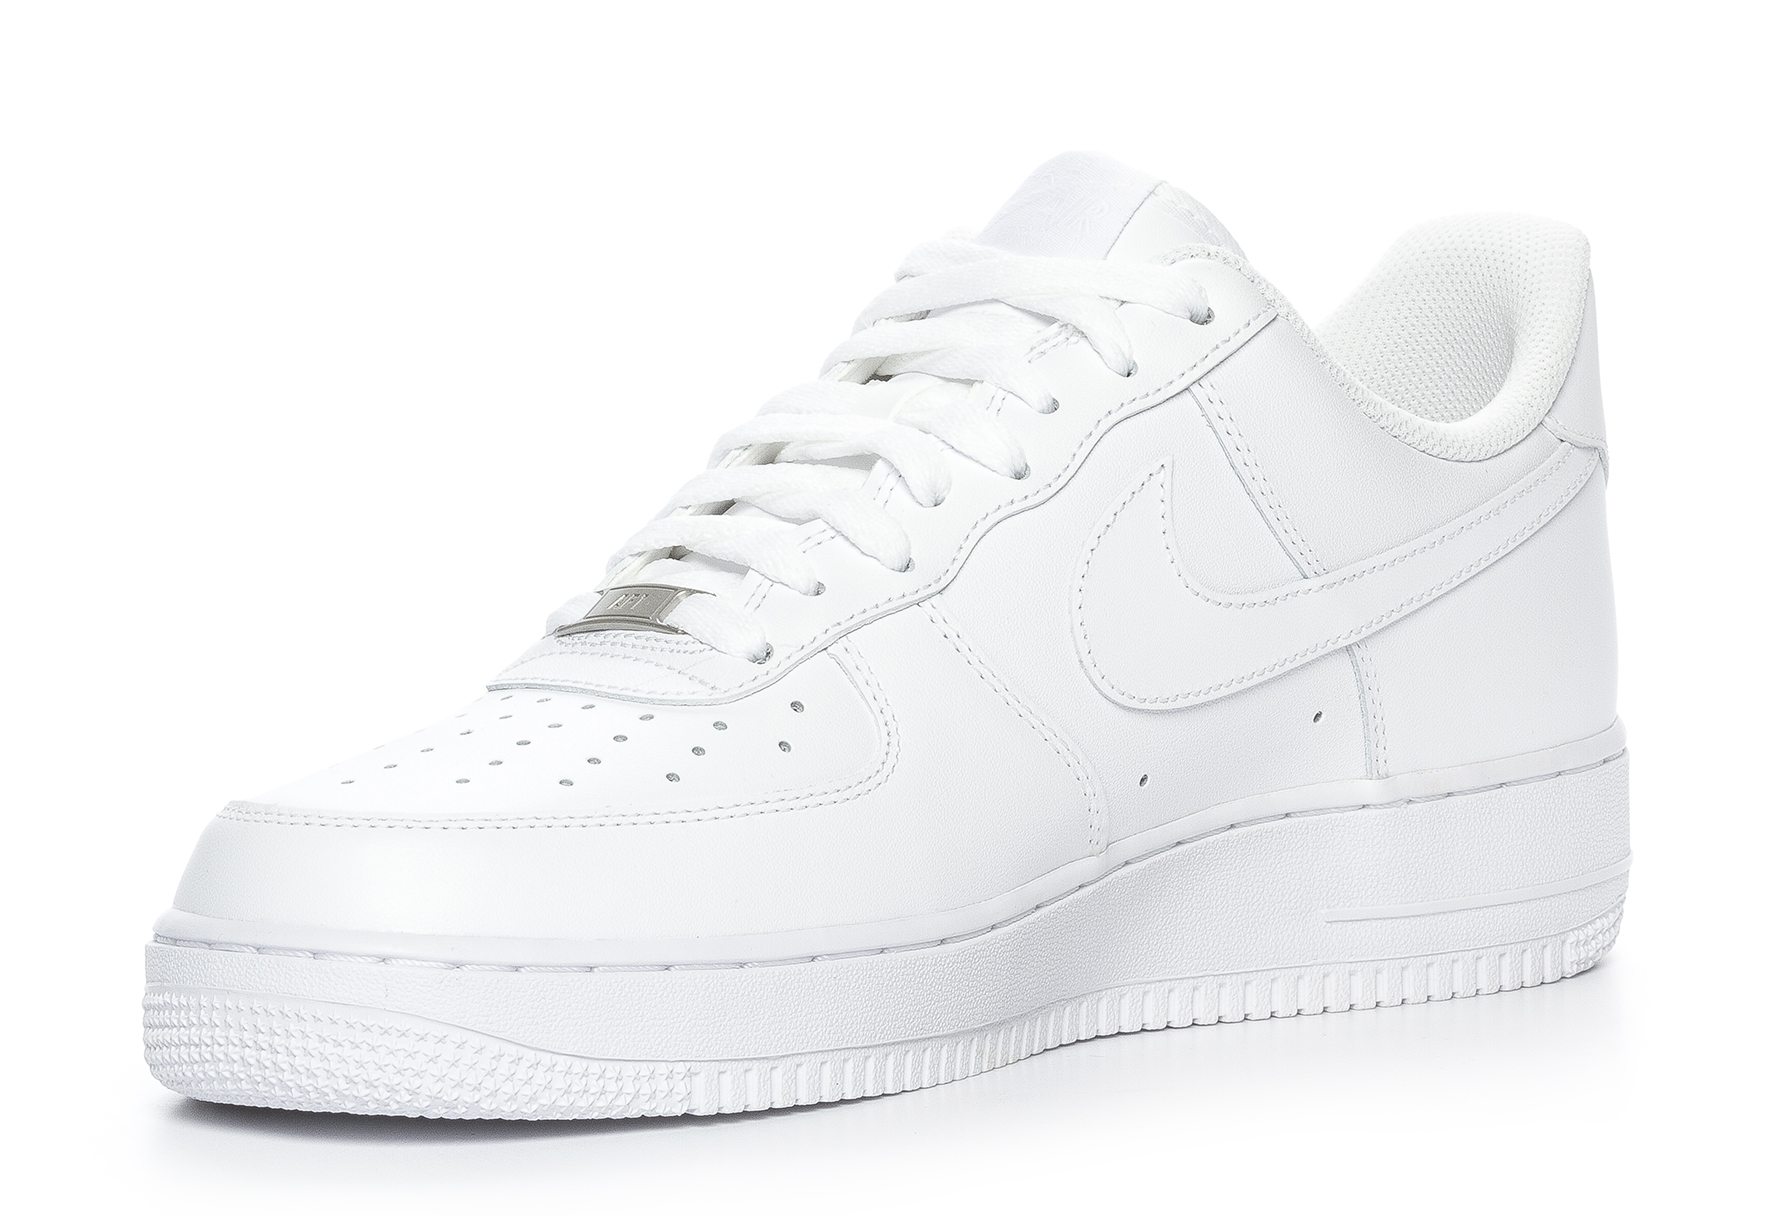 new styles a3f8c 9a8c4 Nike Air Force 1 `07 - Valkoinen 261233 feetfirst.fi